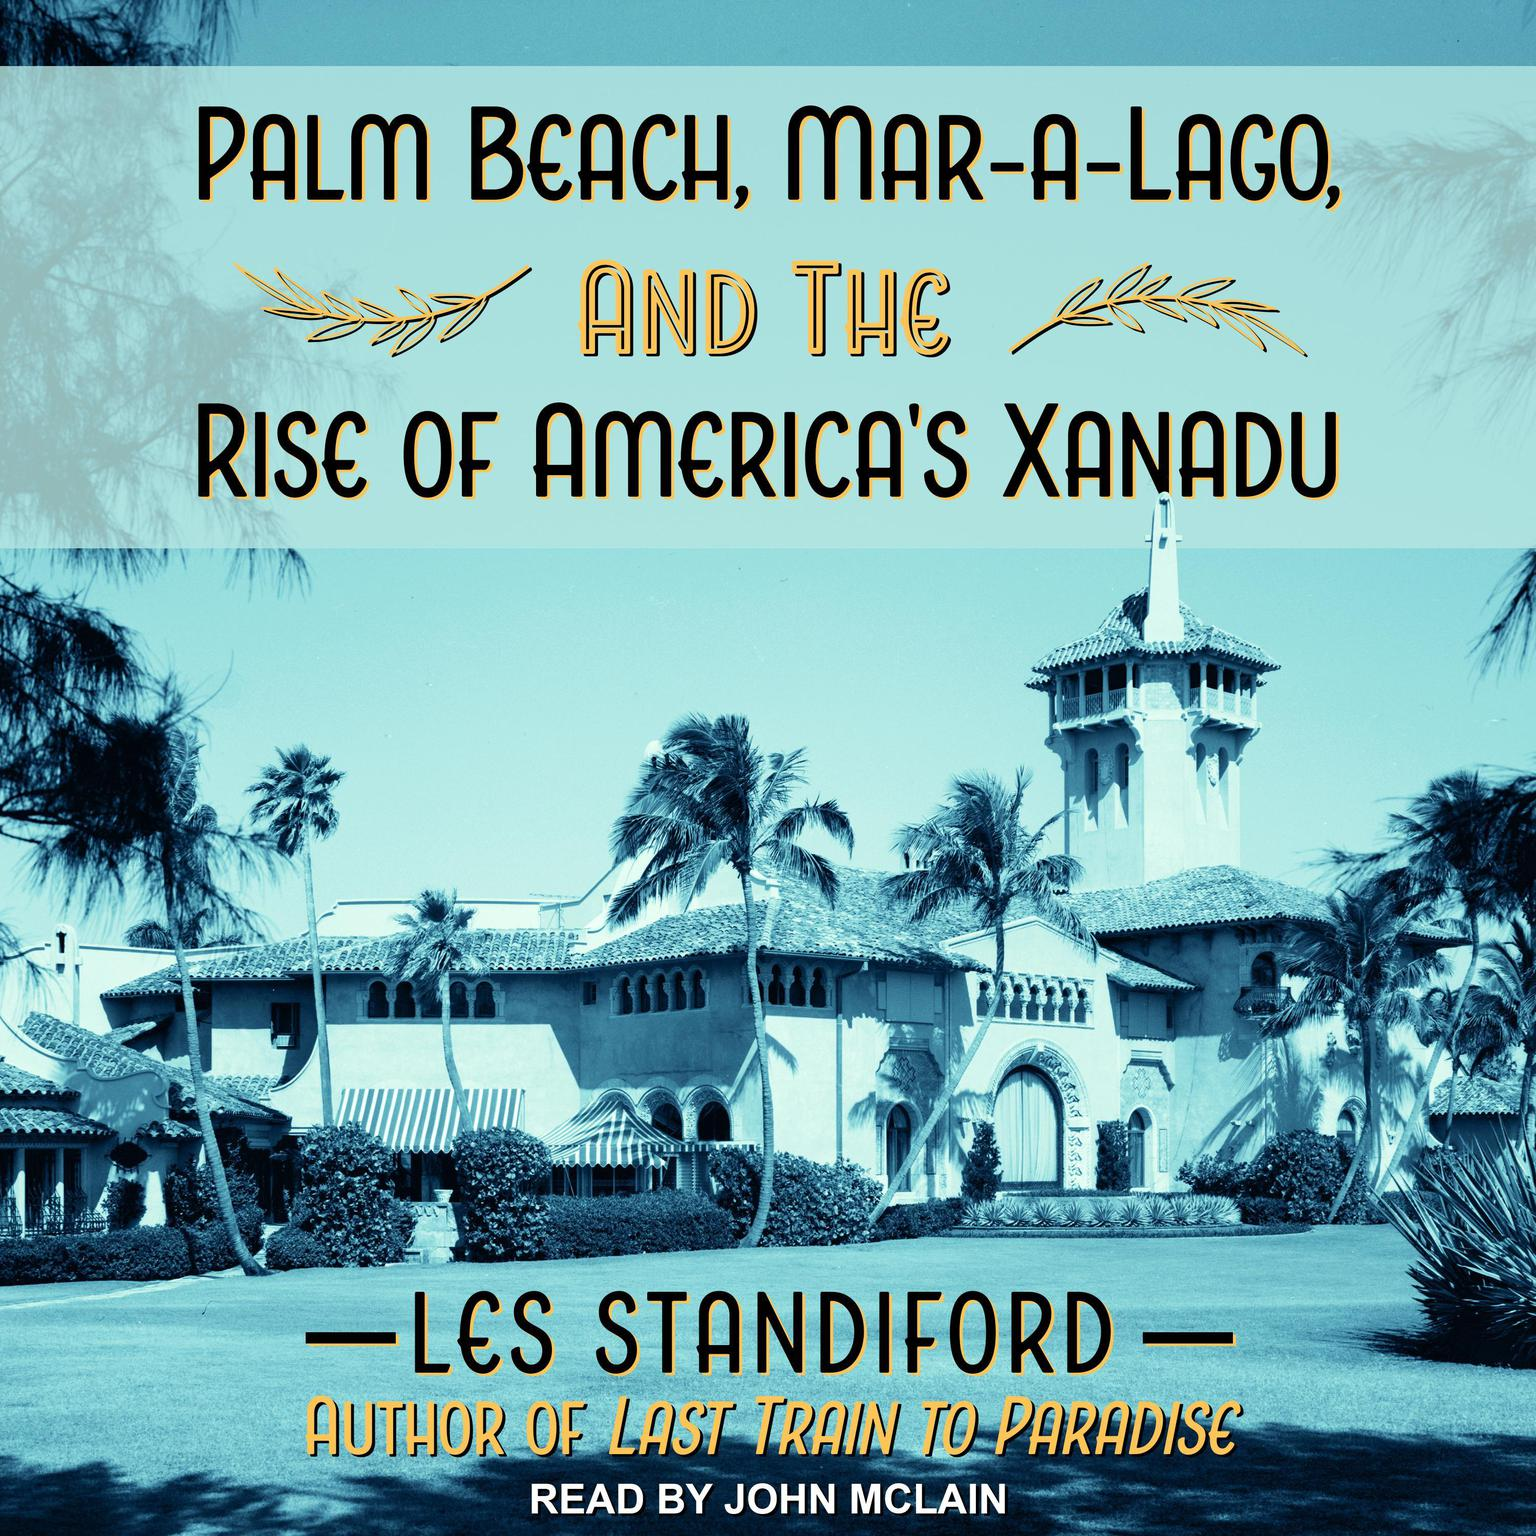 Palm Beach, Mar-a-Lago, and the Rise of Americas Xanadu Audiobook, by Les Standiford